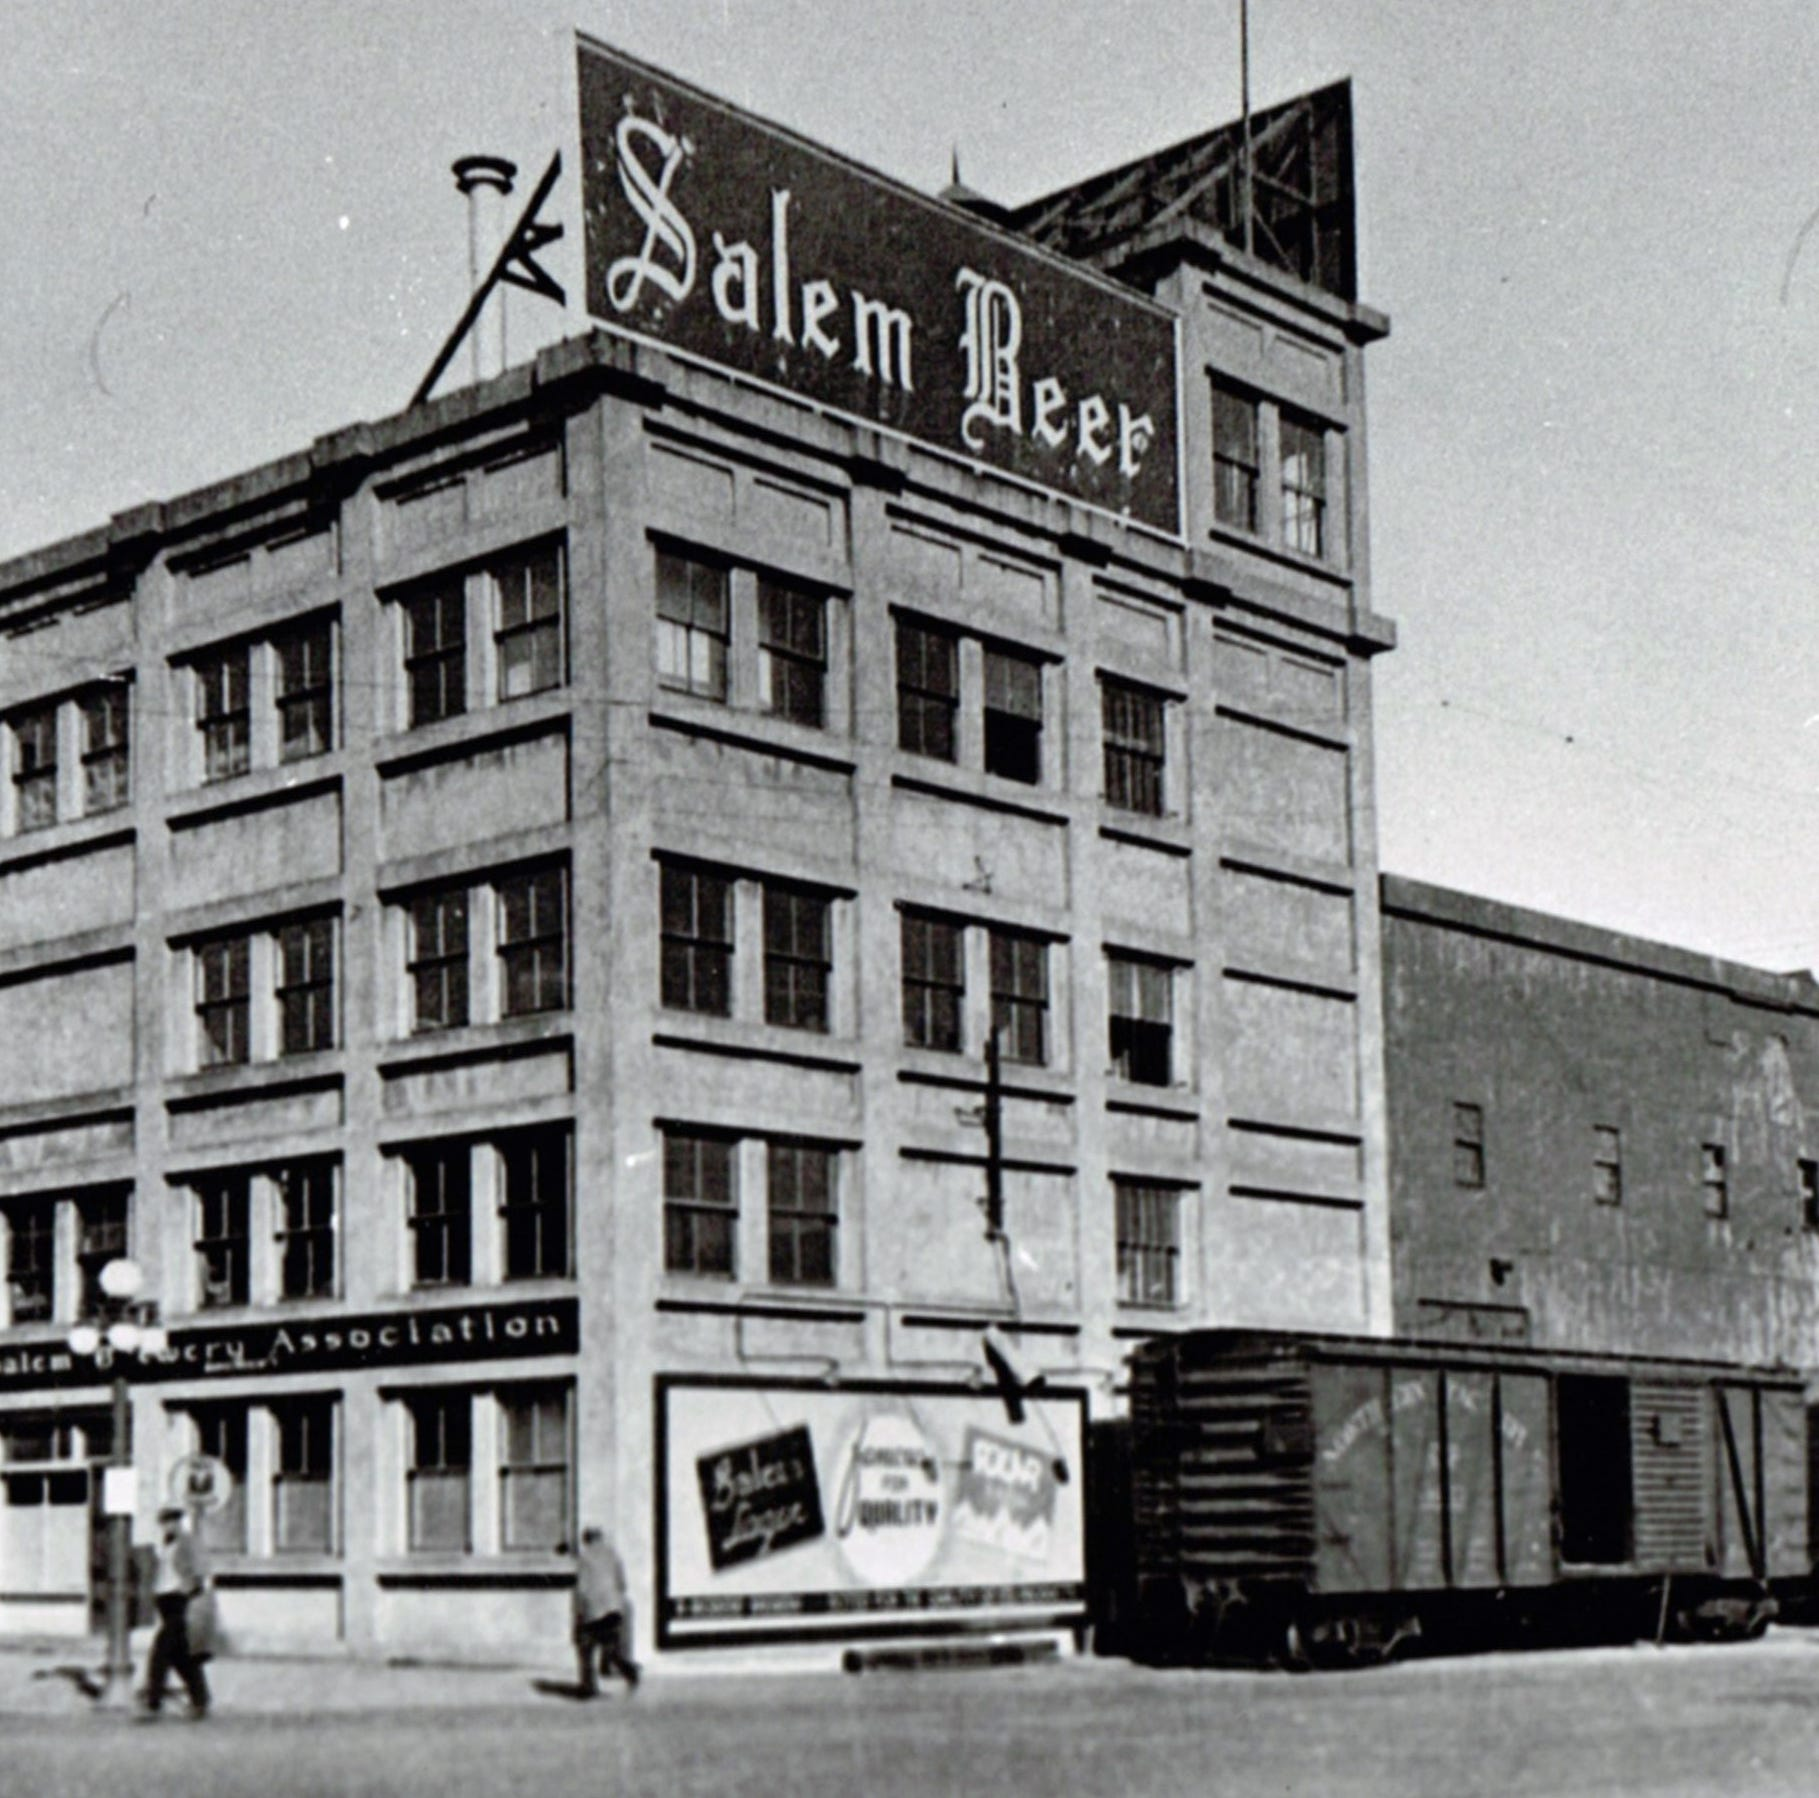 Salem voters ushered in 'dry' era in 1913